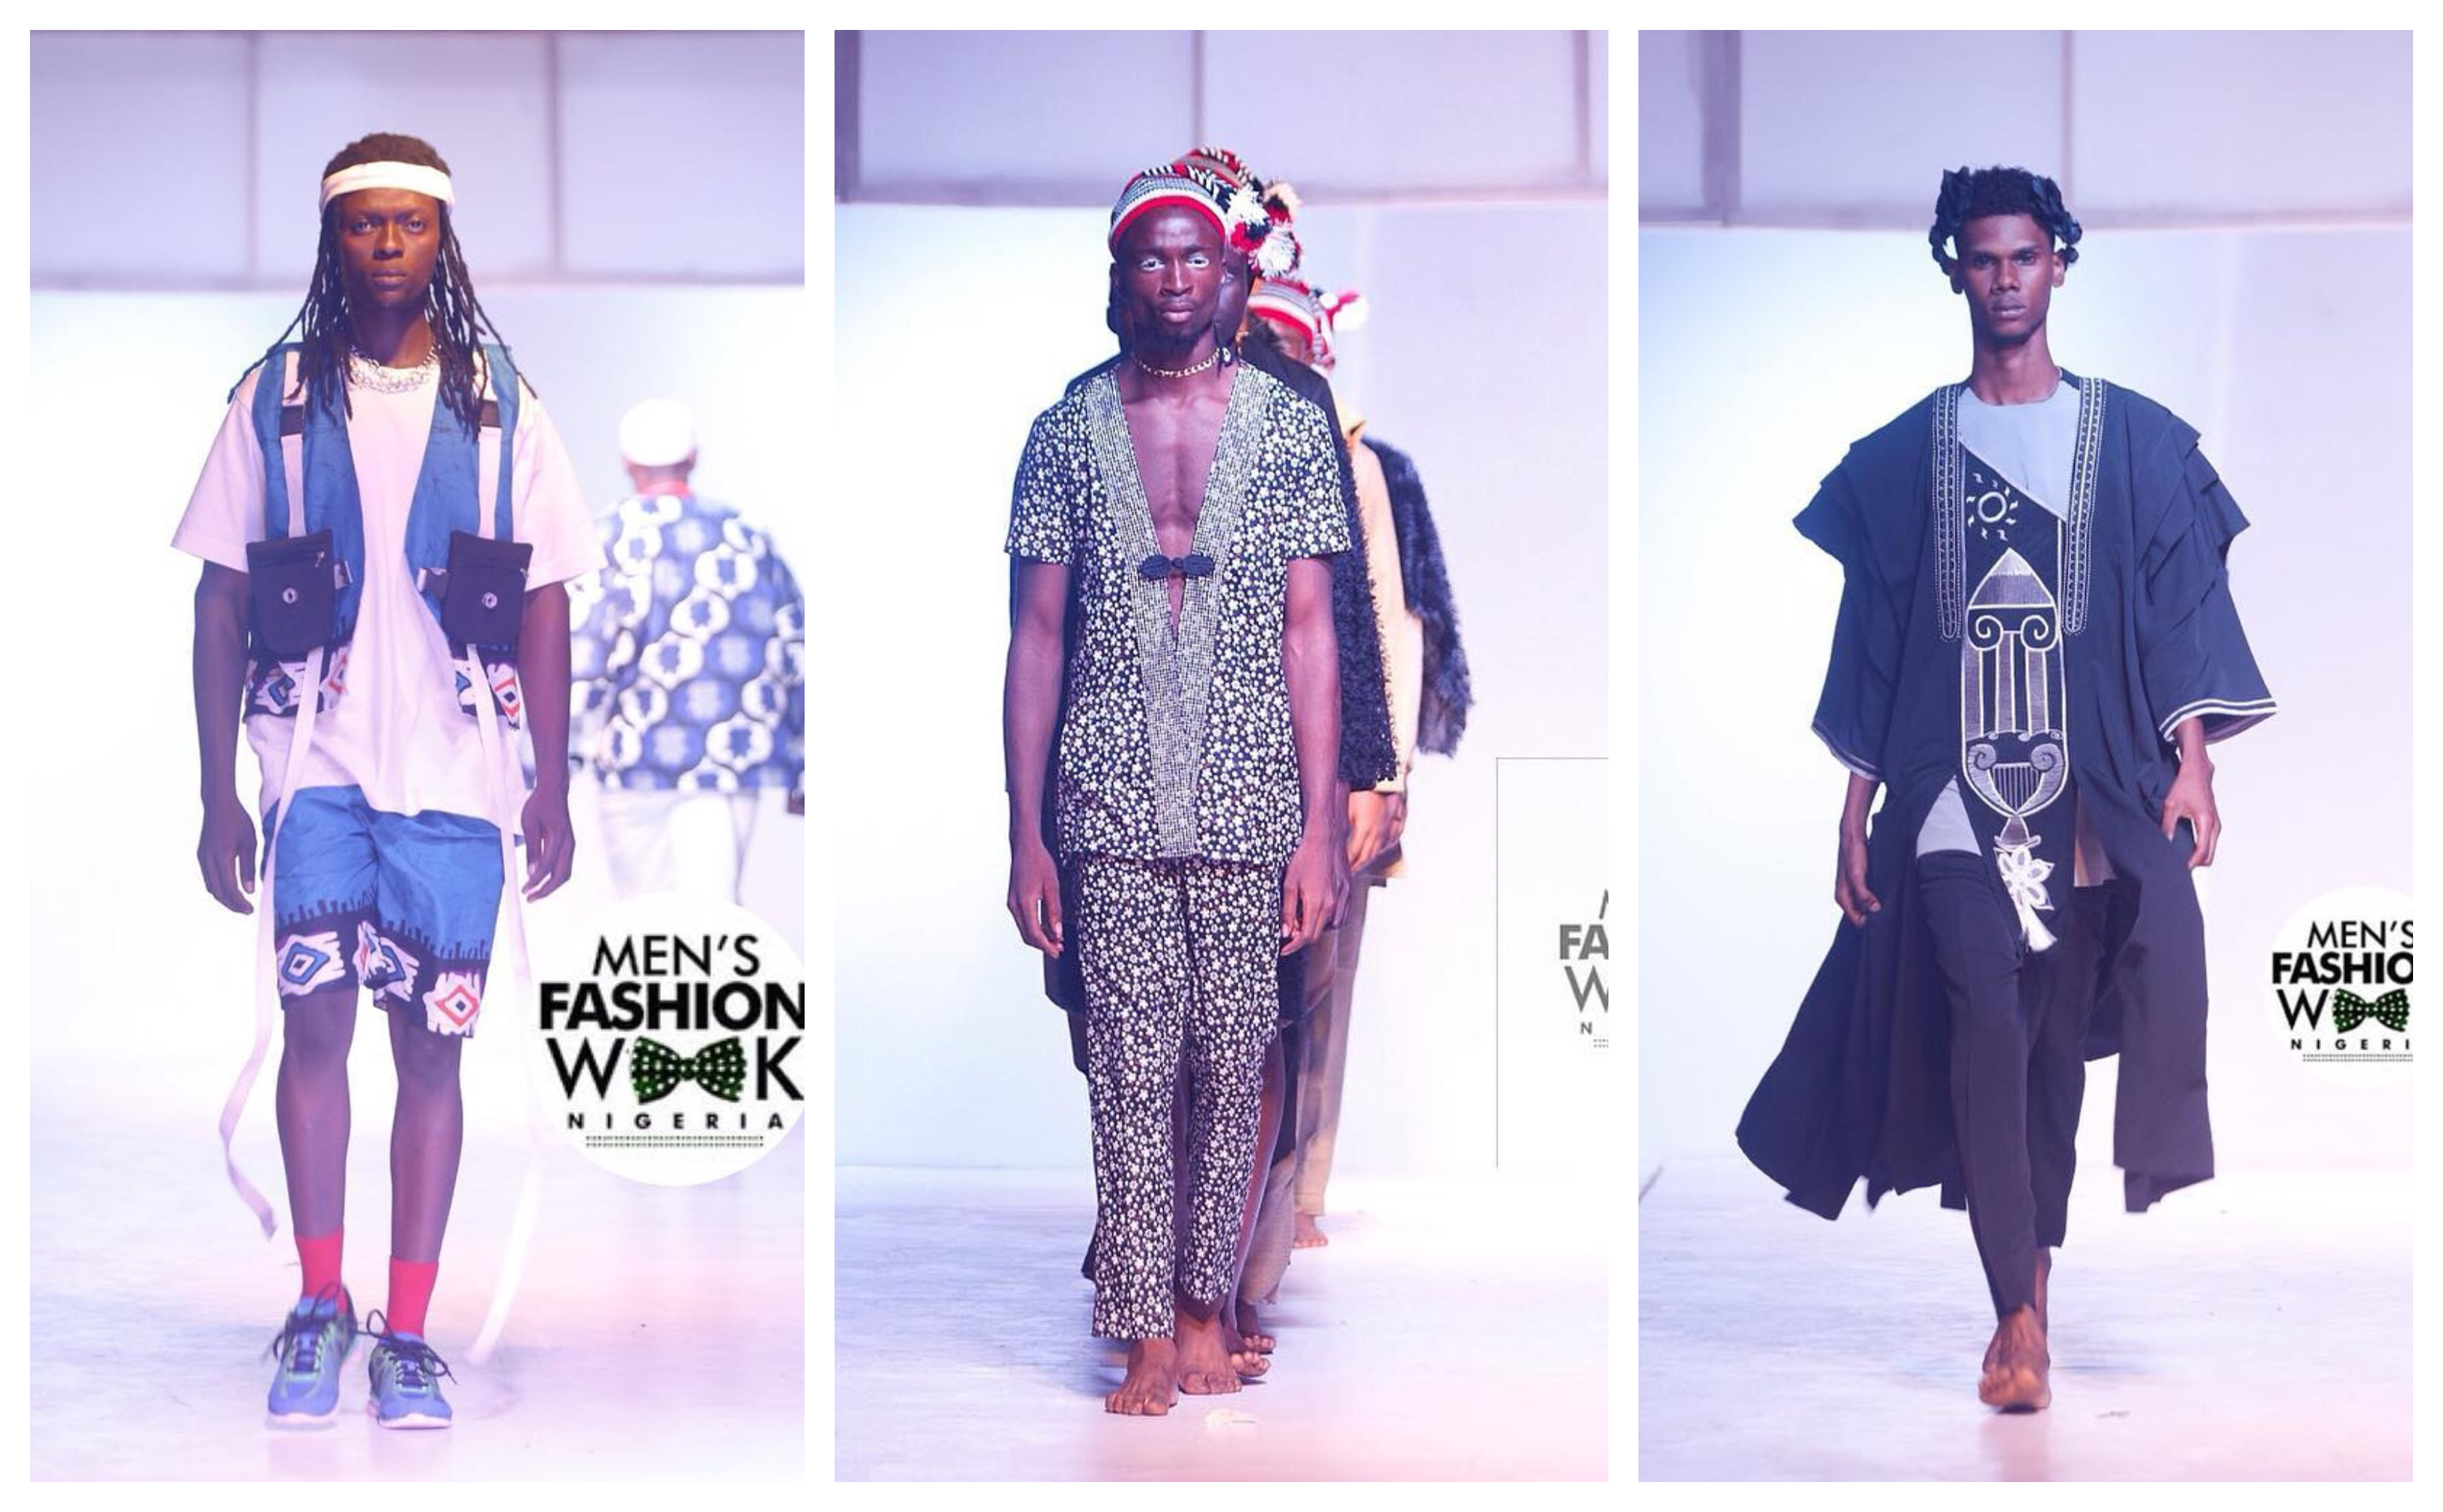 Men S Fashion Week Nigeria Sees Continued Growth But What Are They Saying Haute Fashion Africa Hfa